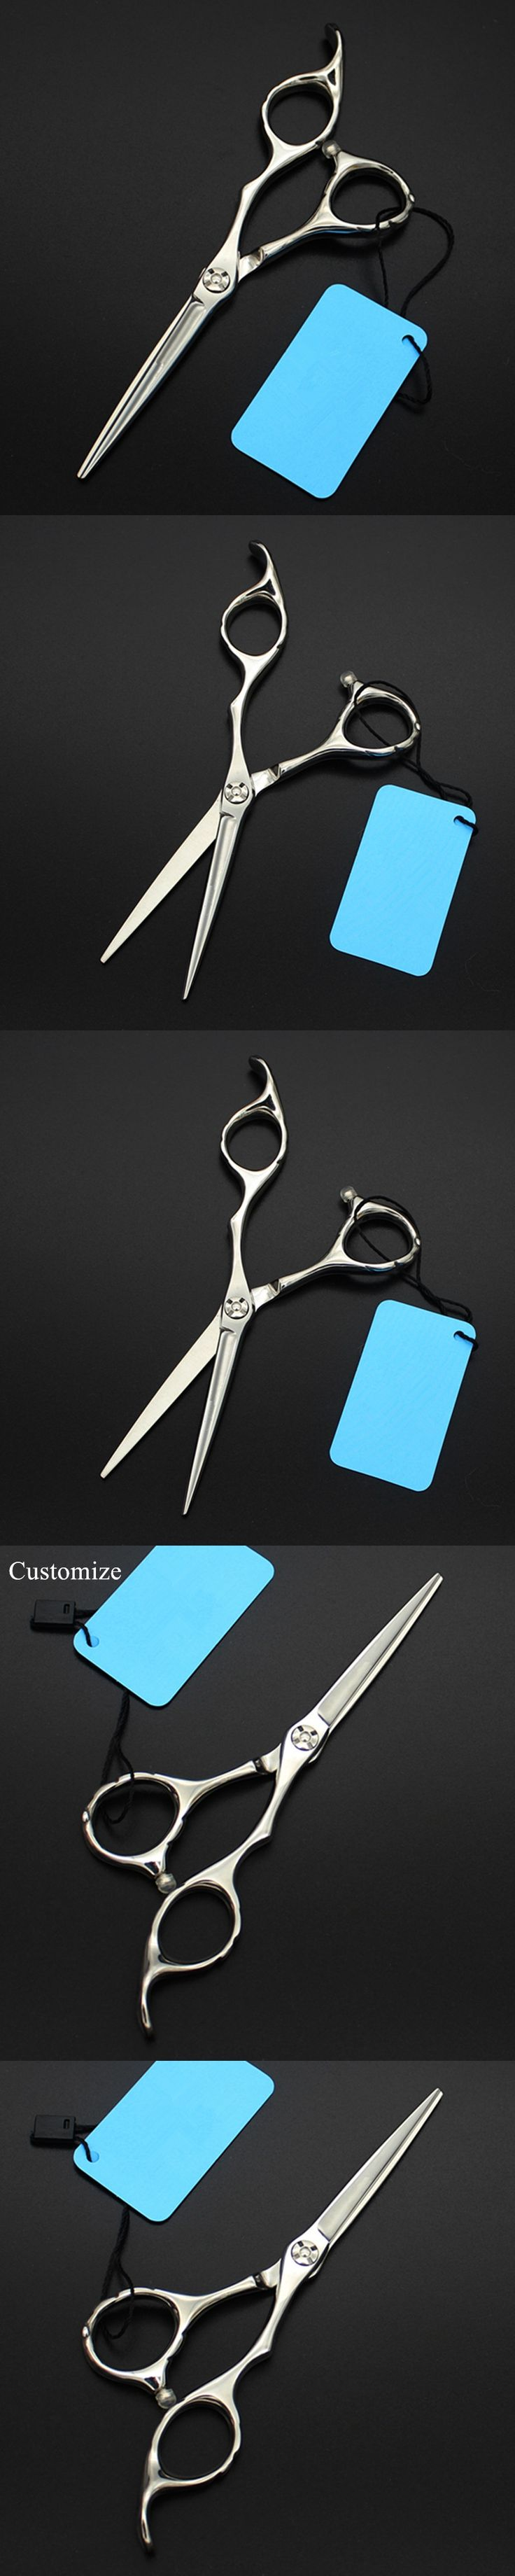 Customize Japan steel 5 inch small hair salon scissors nose trimmer eyebrow cutting barber eyebrows shears hairdressing scissors